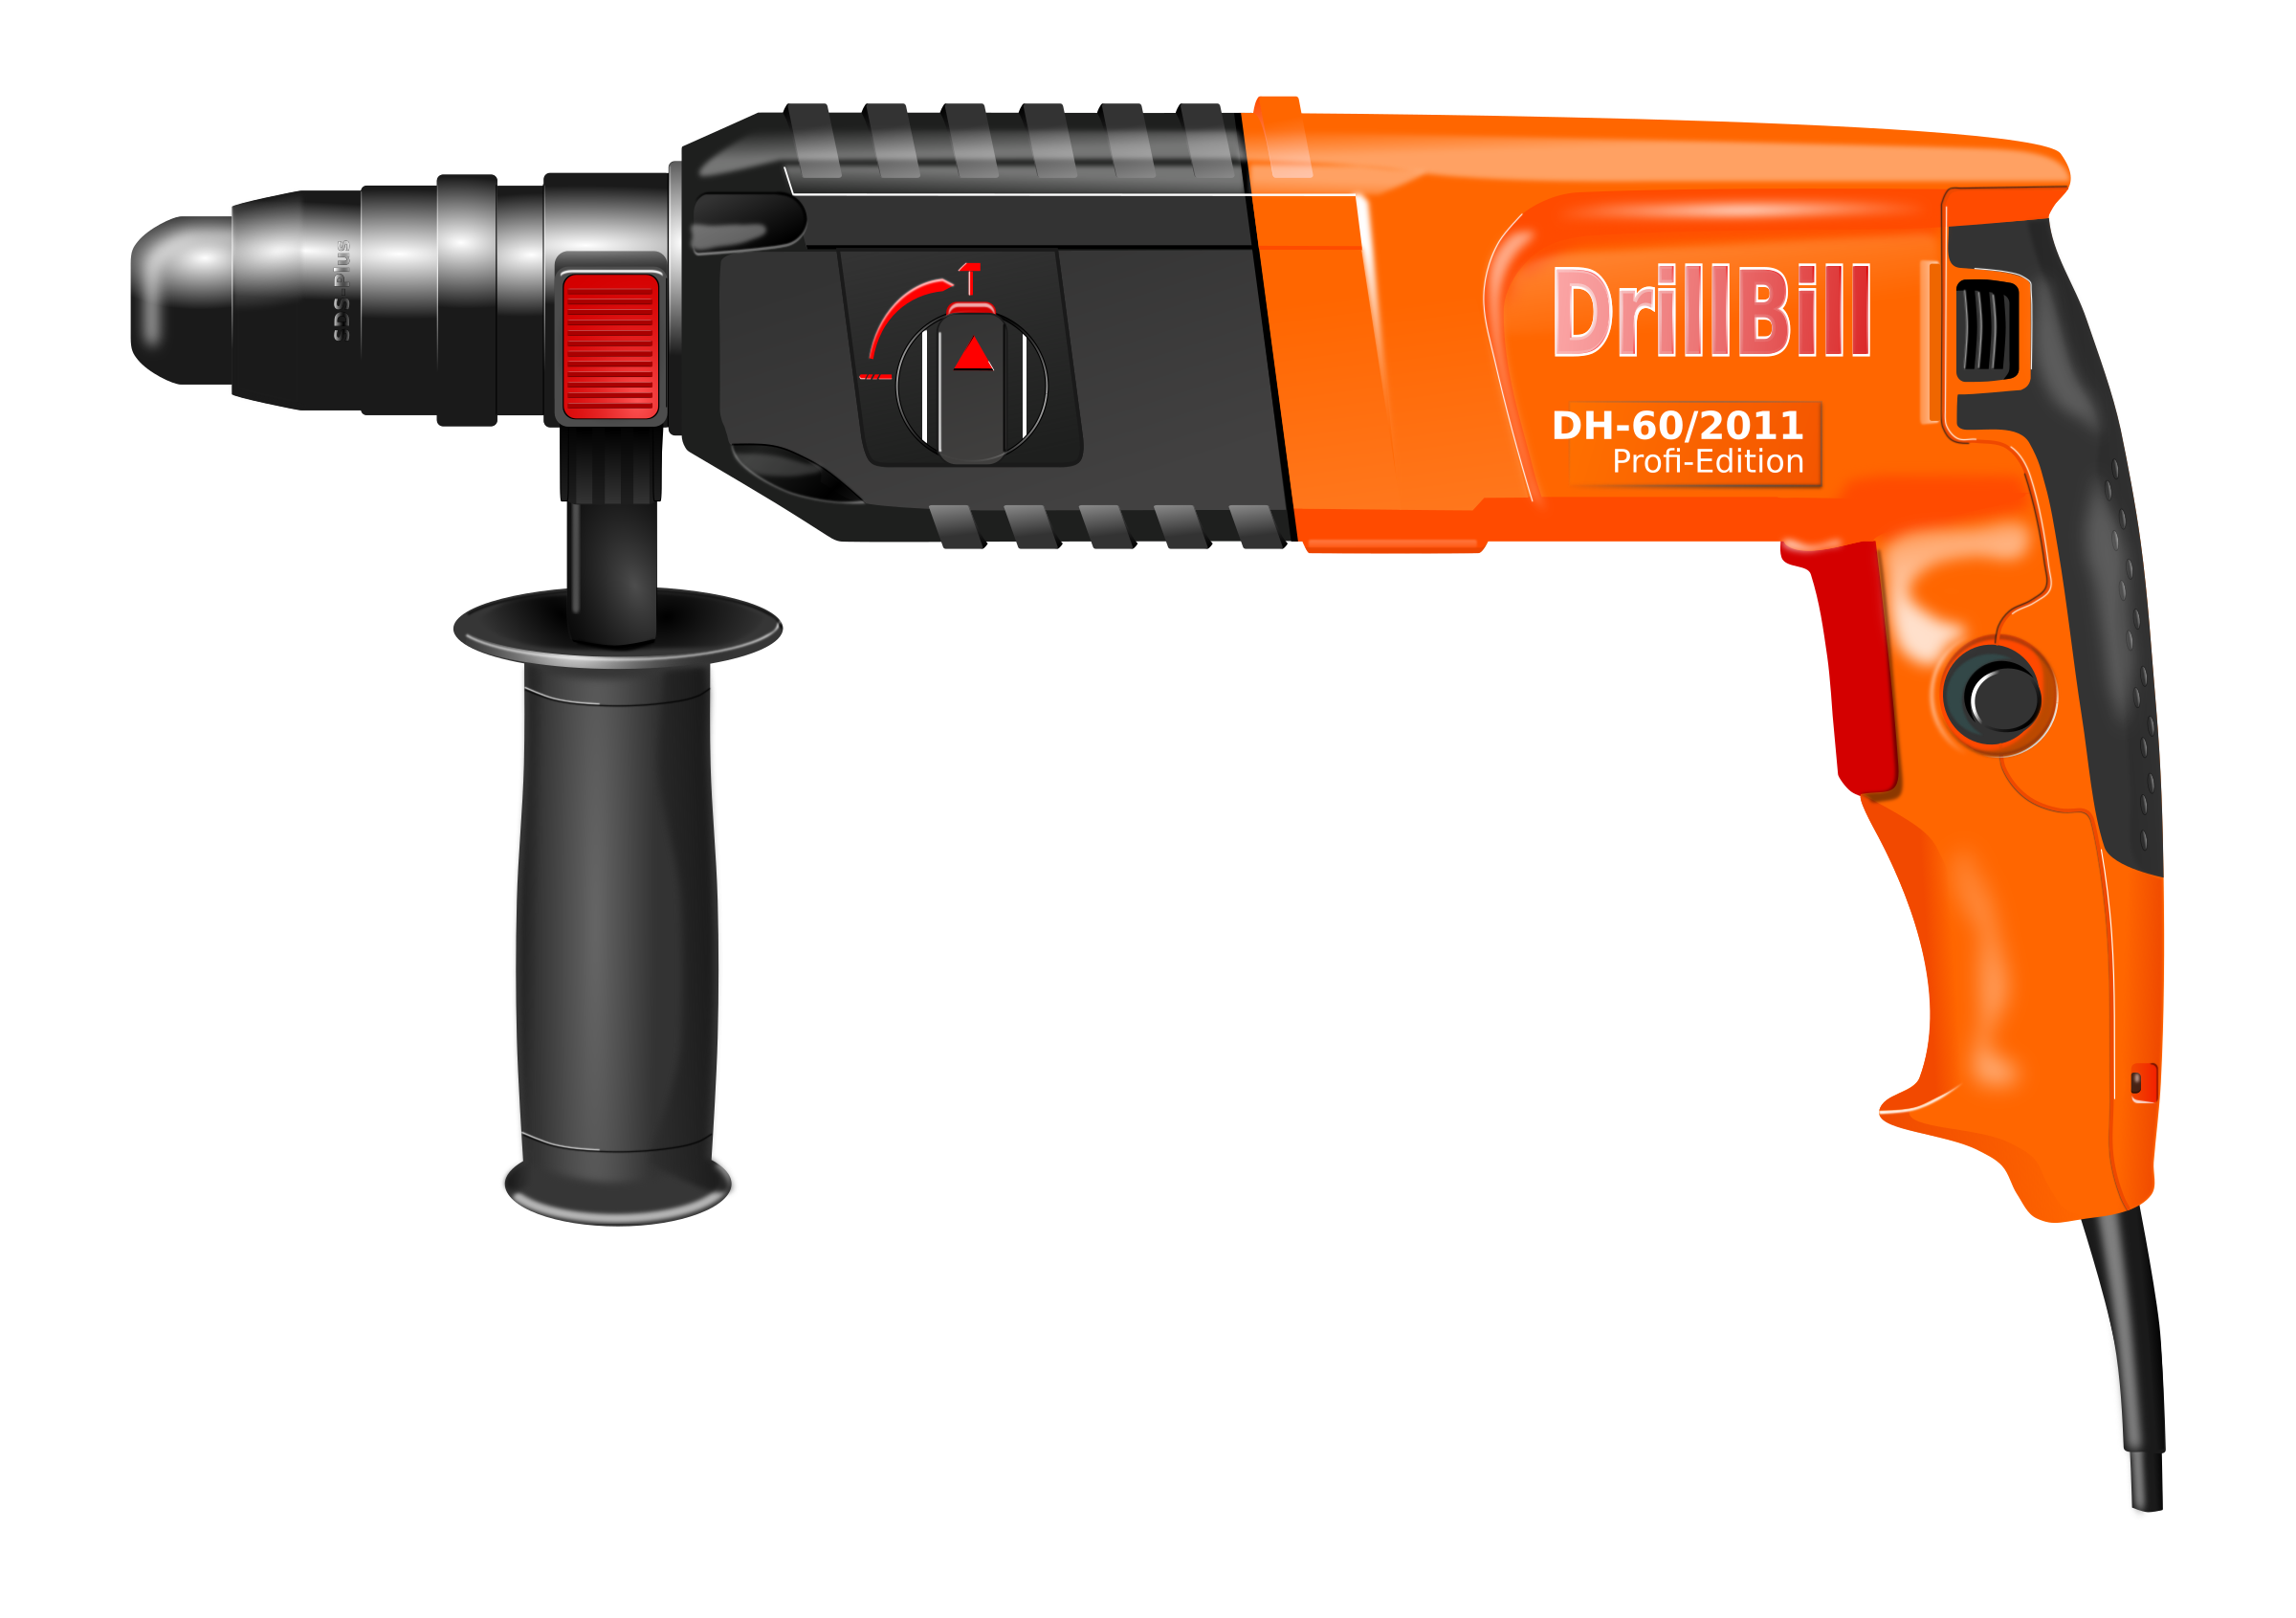 Clipart hammer roofing tool. Photorealistic drill big image